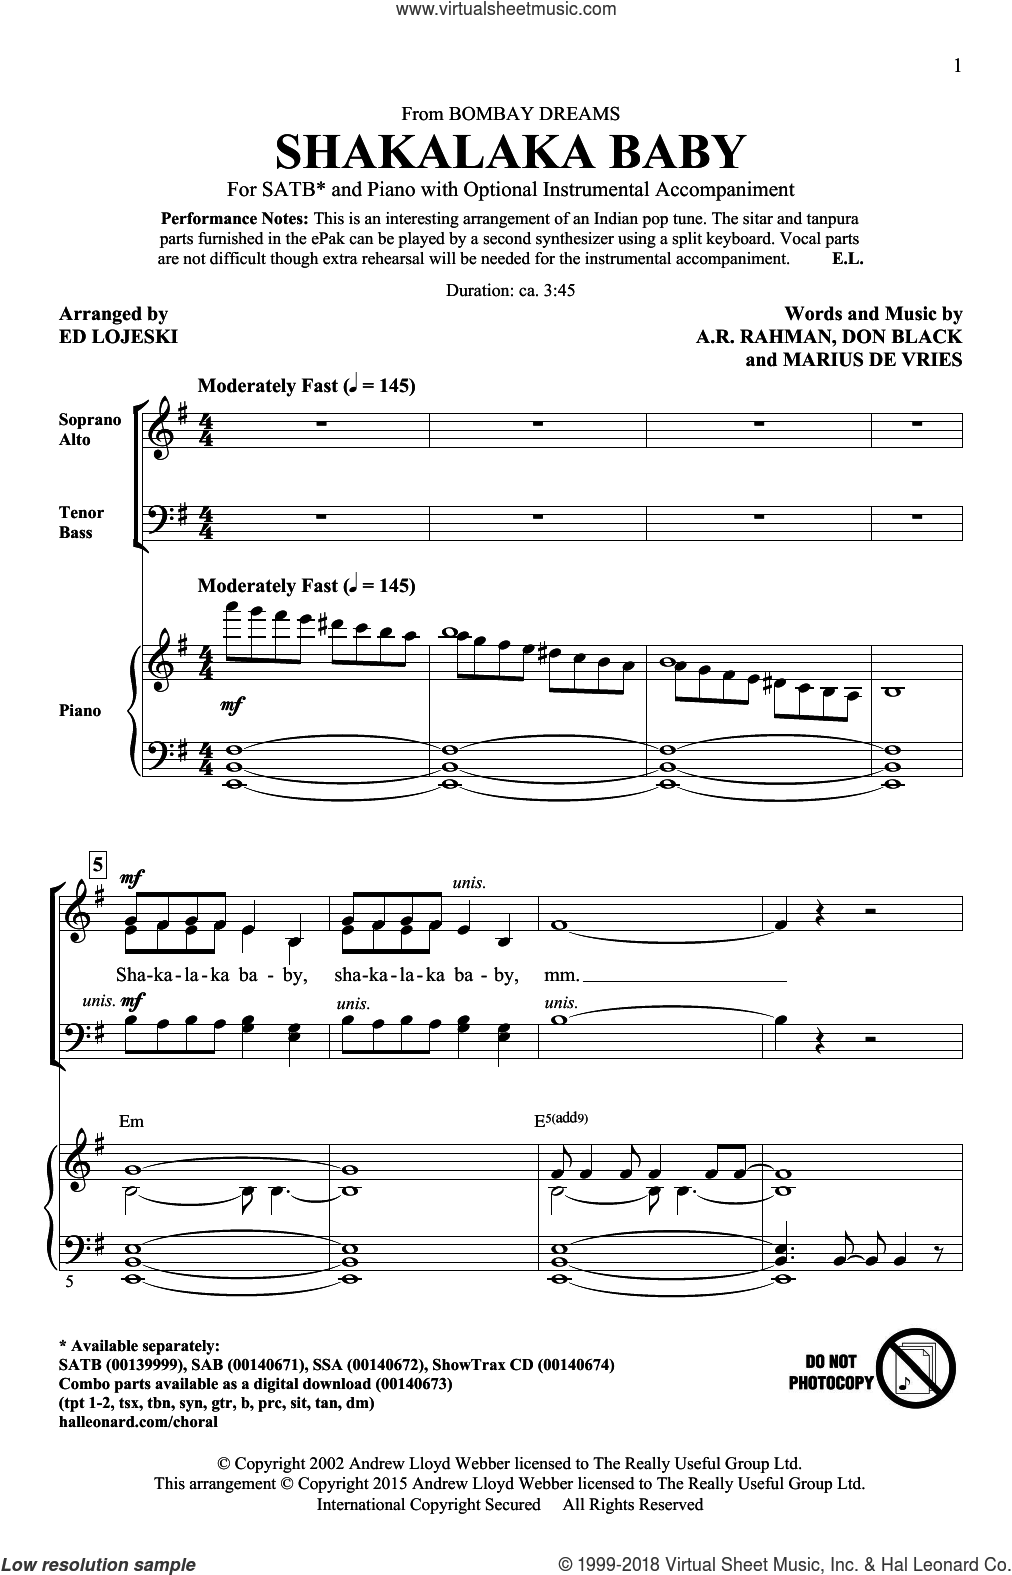 Shakalaka Baby (from Bombay Dreams) sheet music for choir (SATB: soprano, alto, tenor, bass) by Don Black, Ed Lojeski, A.R. Rahman and Marius De Vries, intermediate skill level